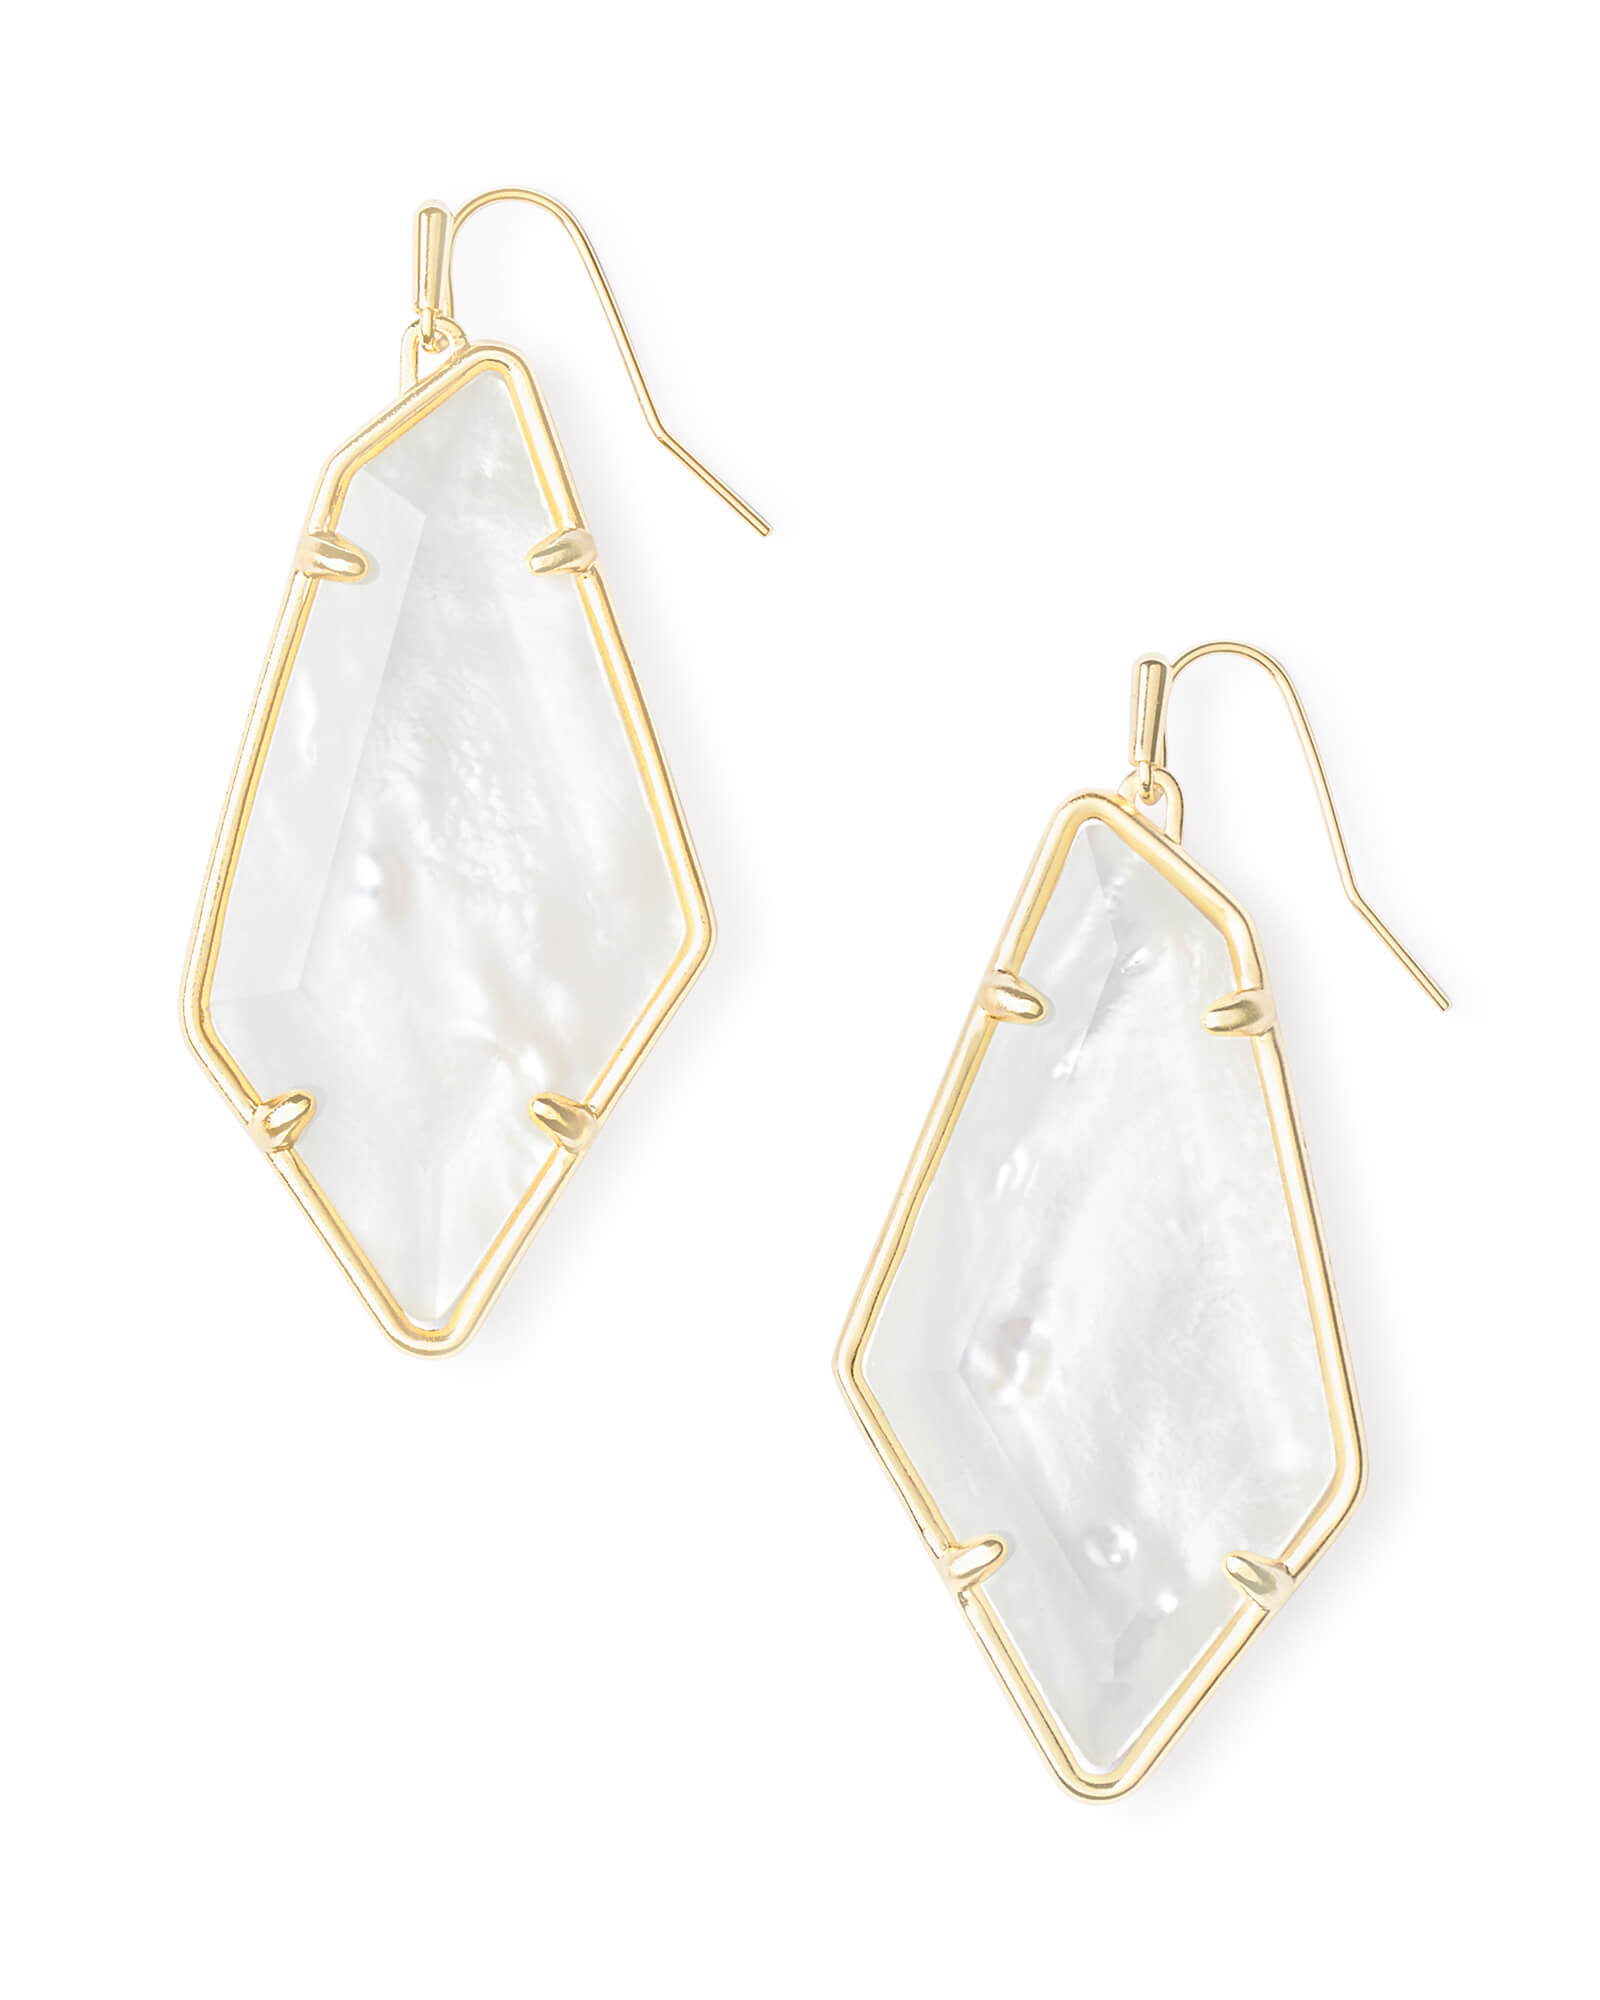 Emilia Gold Drop Earrings in Ivory Mother-of-Pearl